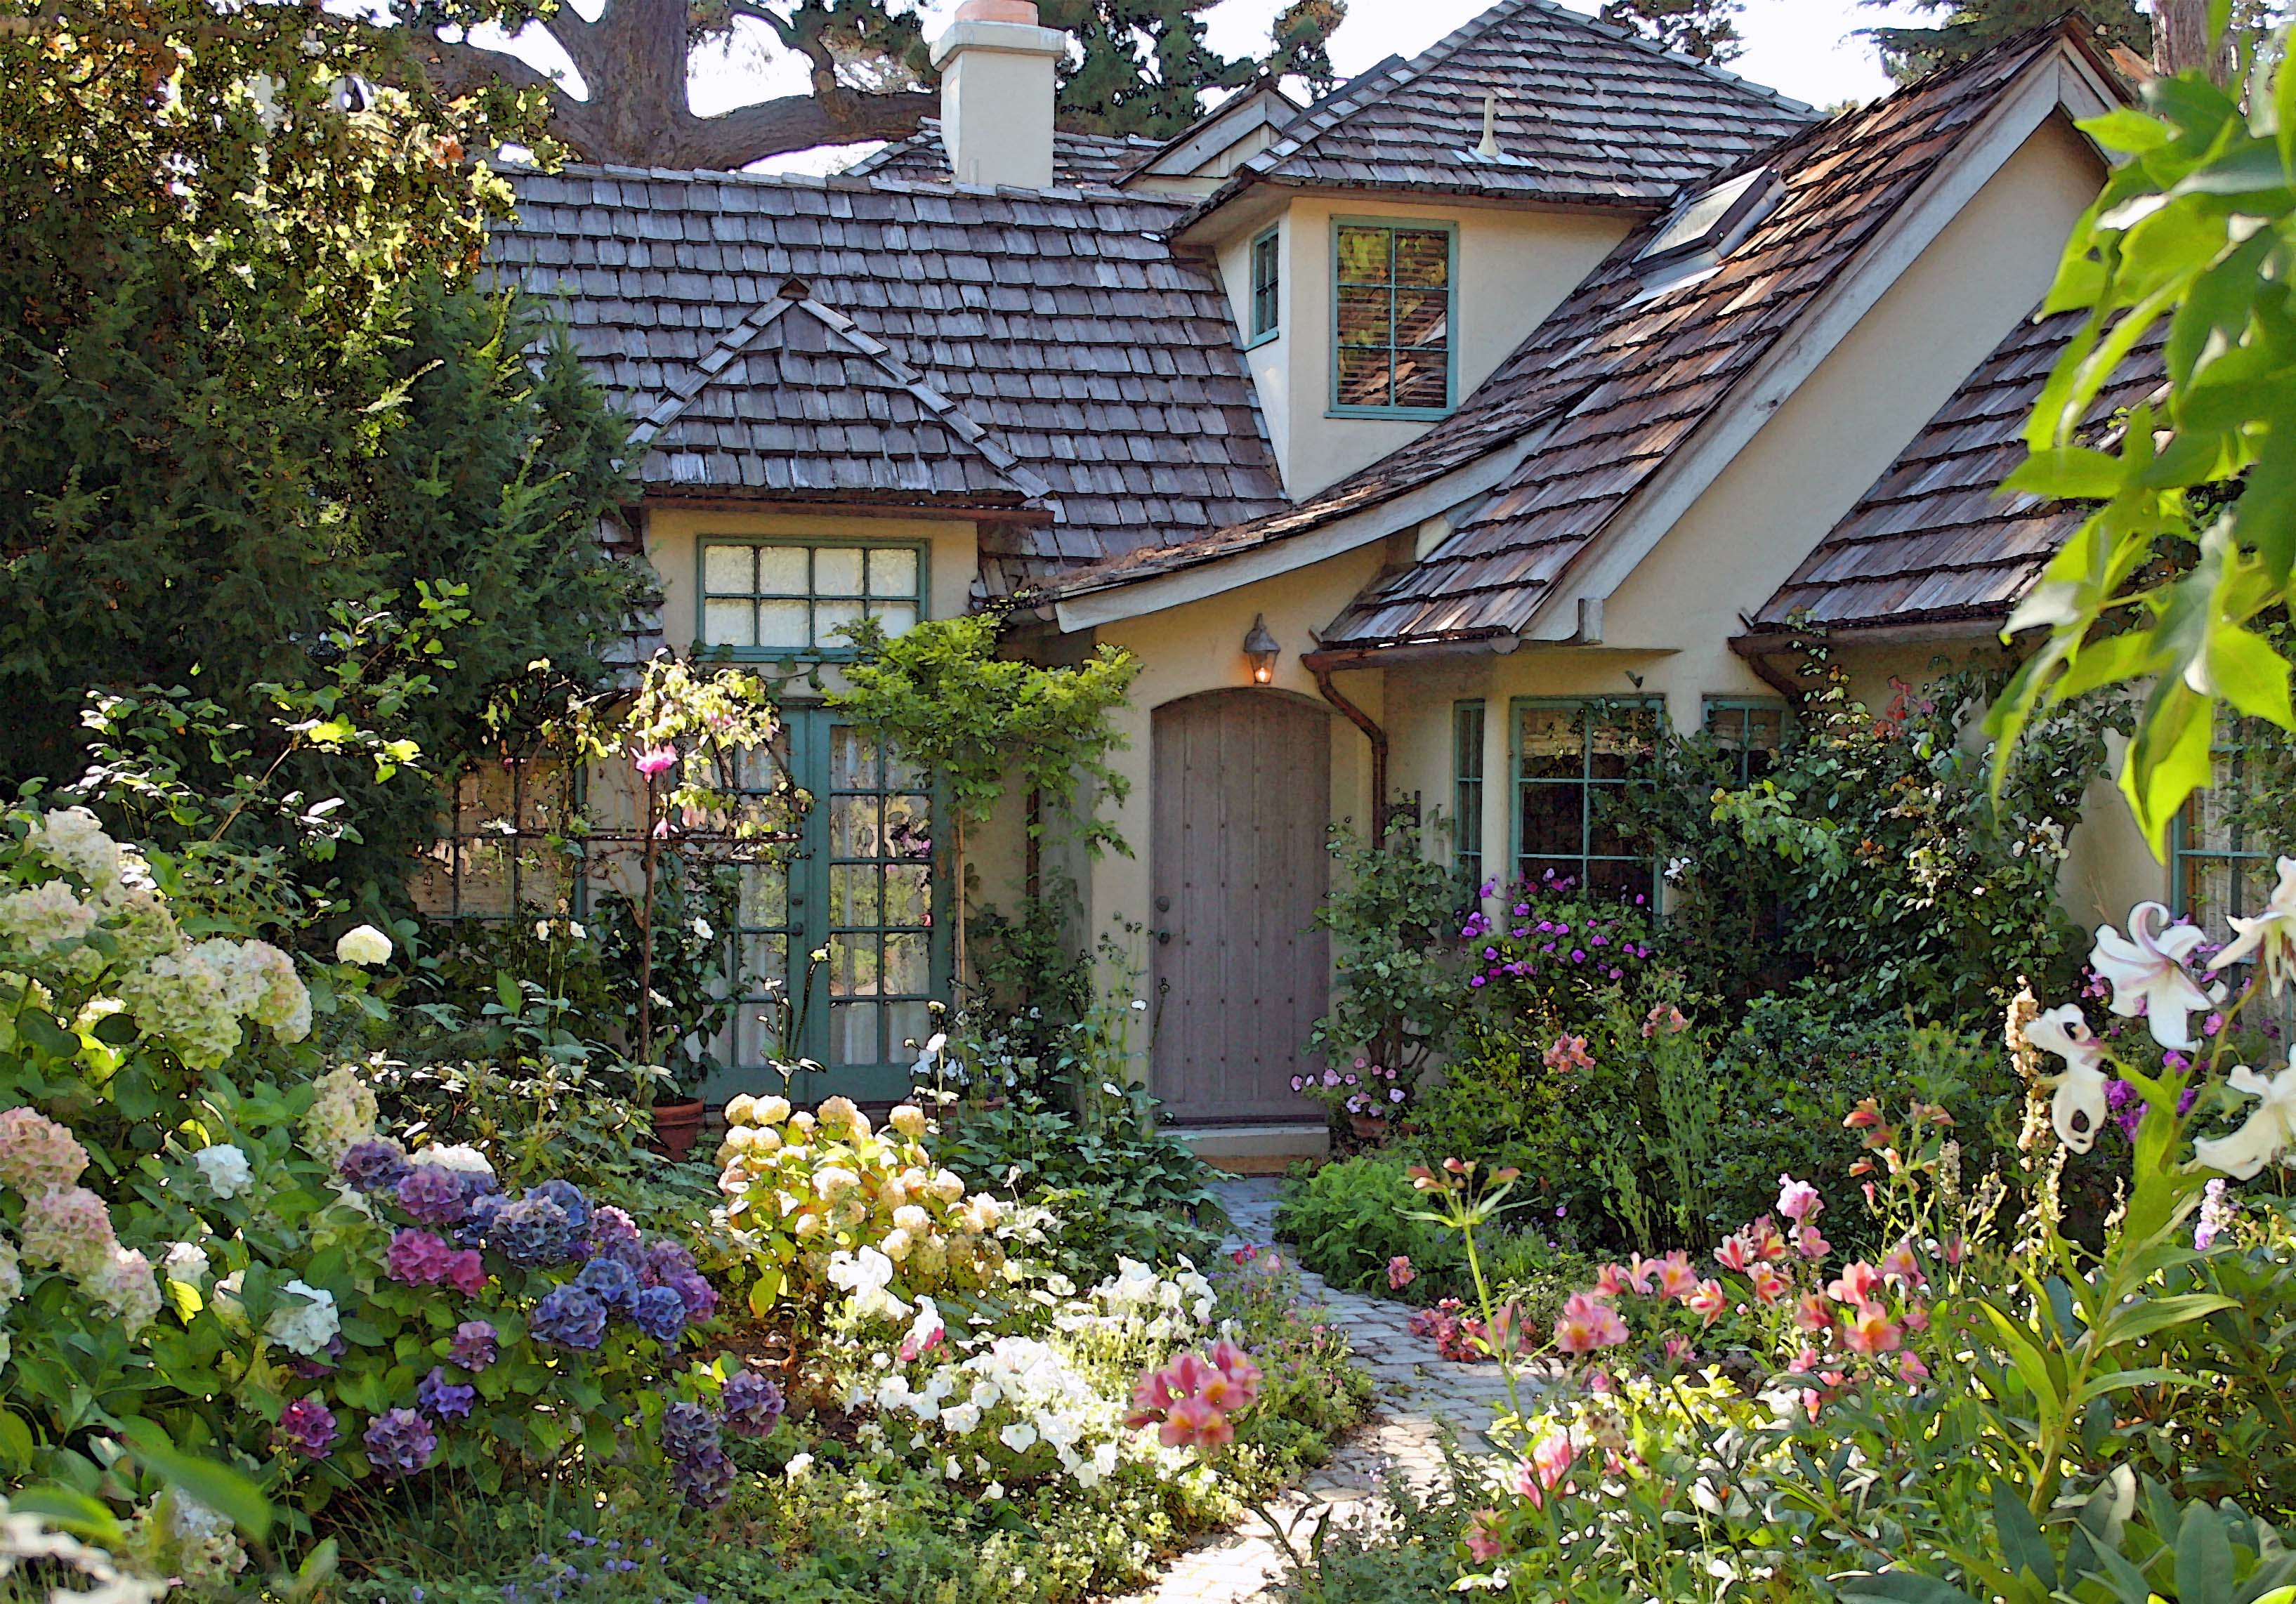 I tour the carmel garden of teri winton once upon a time Garden home communities